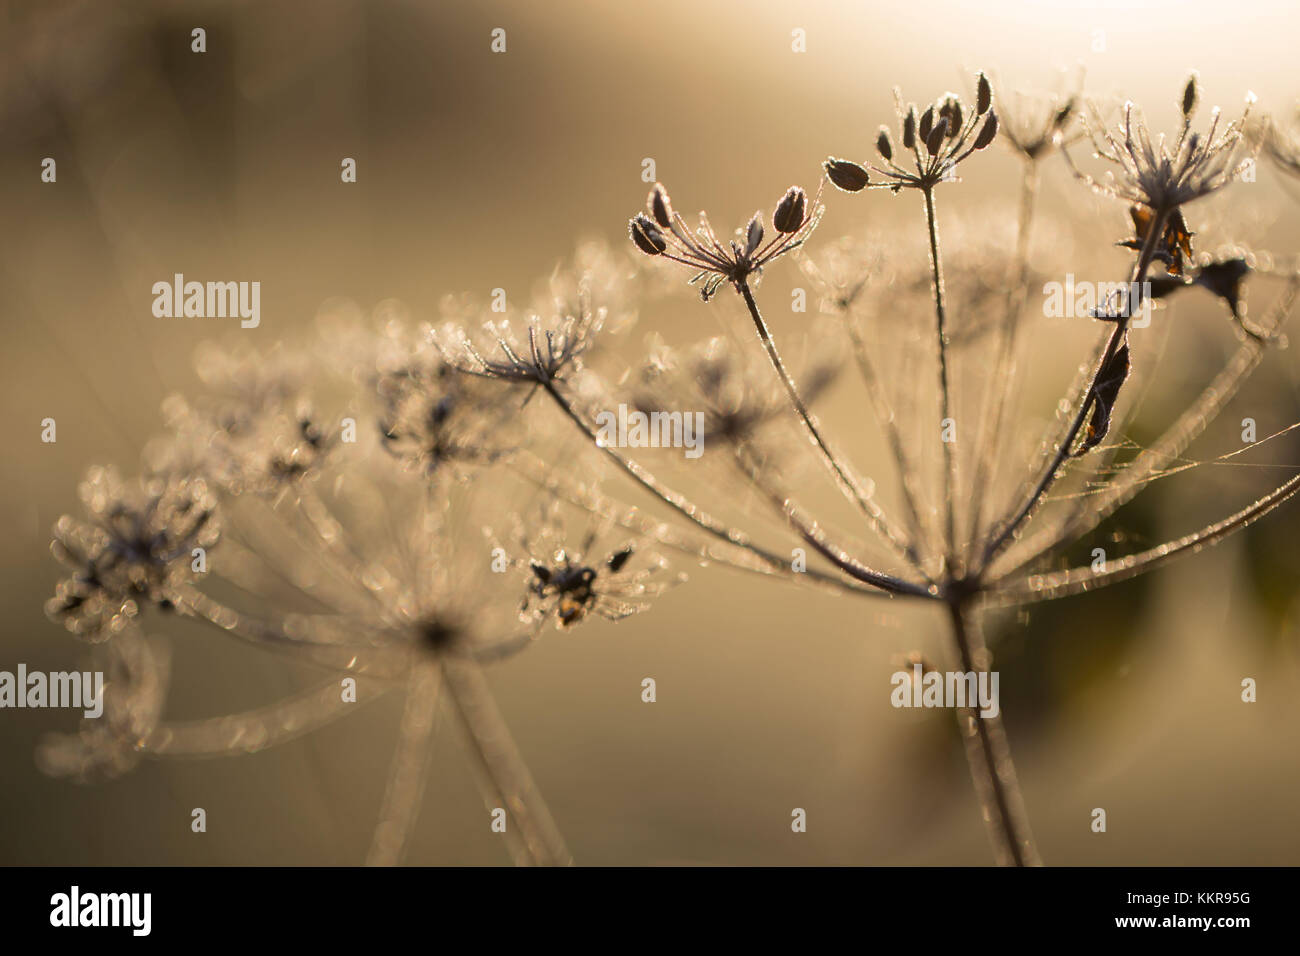 Closeup of hoarfrost crystalline on dry plant, blurred background - Stock Image